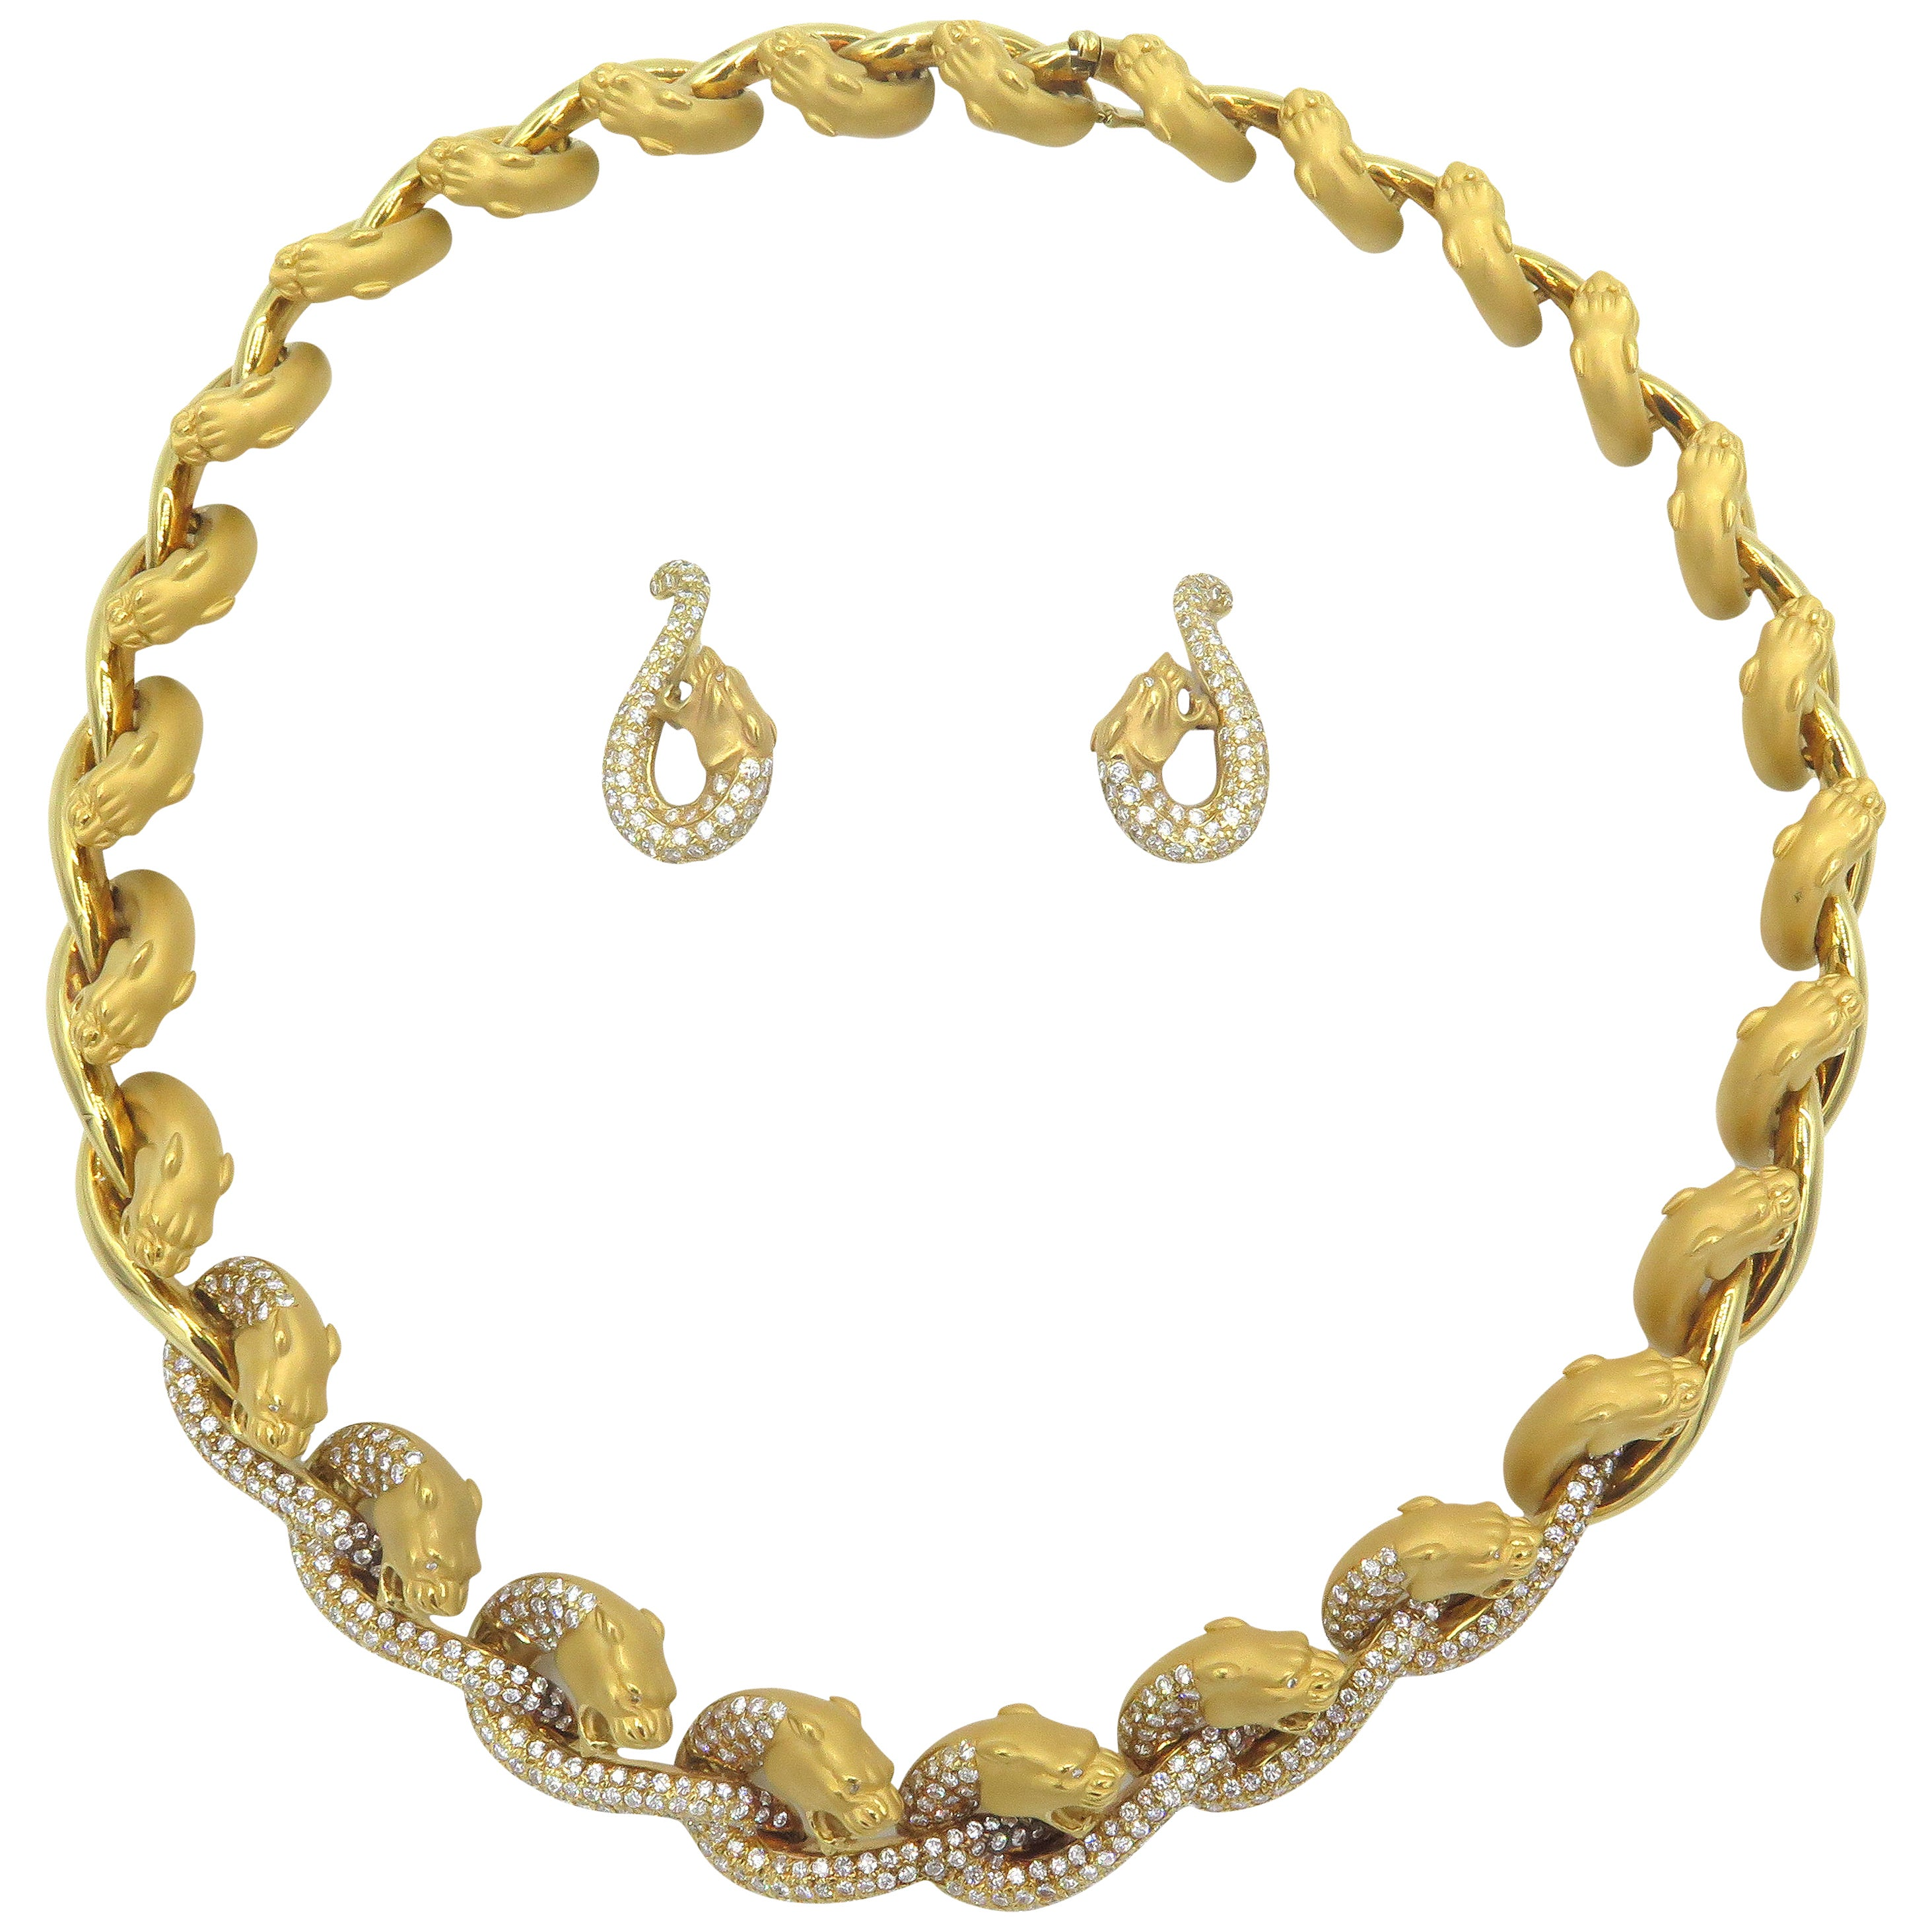 Carrera y Carrera 18 Karat Yellow Gold and Diamond Necklace and Earring Set